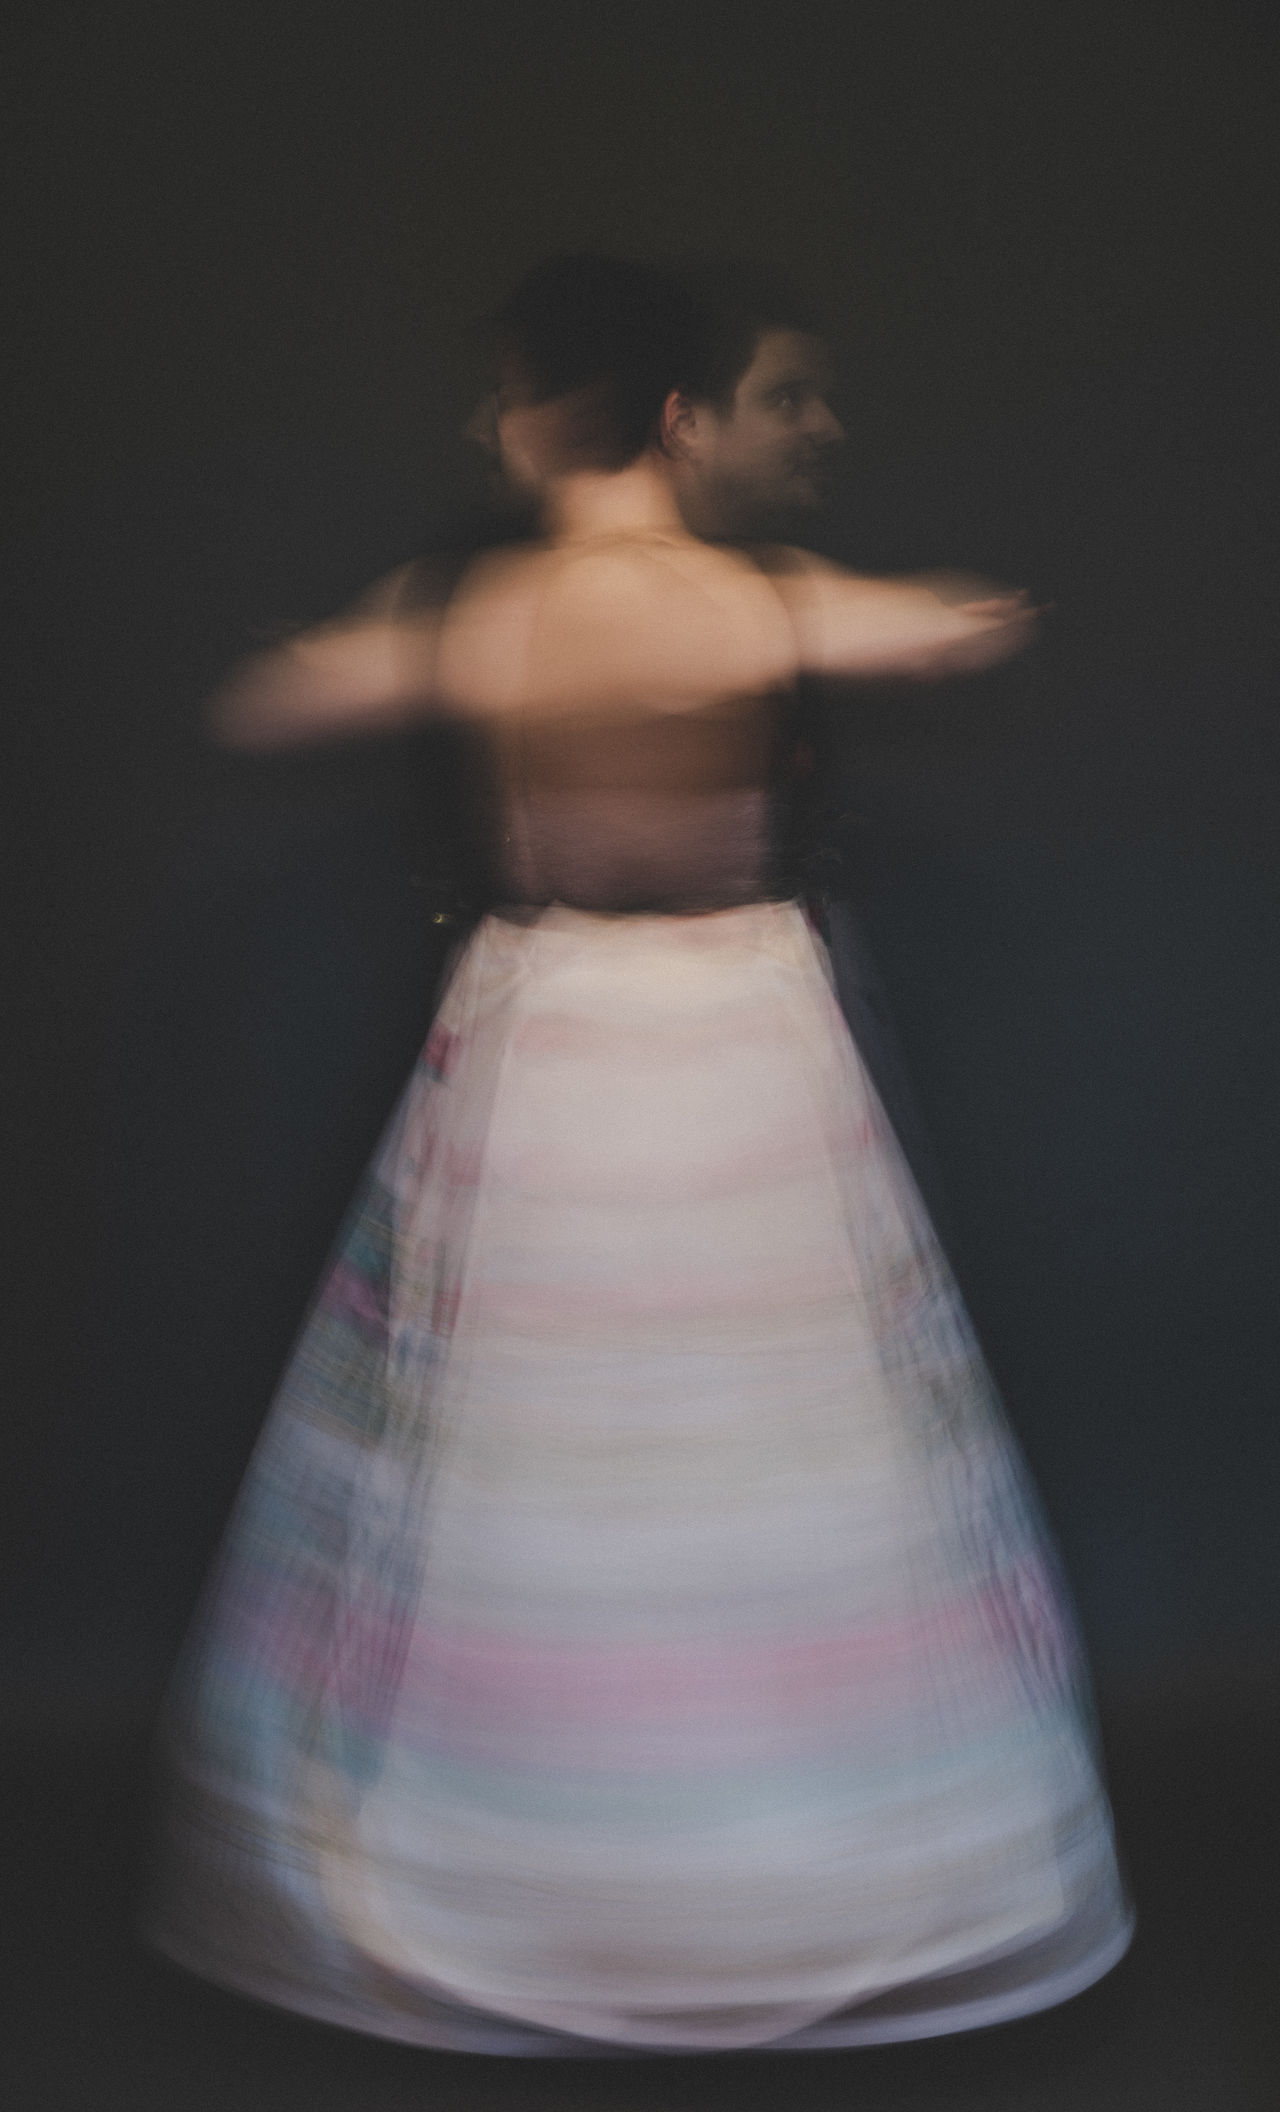 Blurred motion of woman spinning against black background